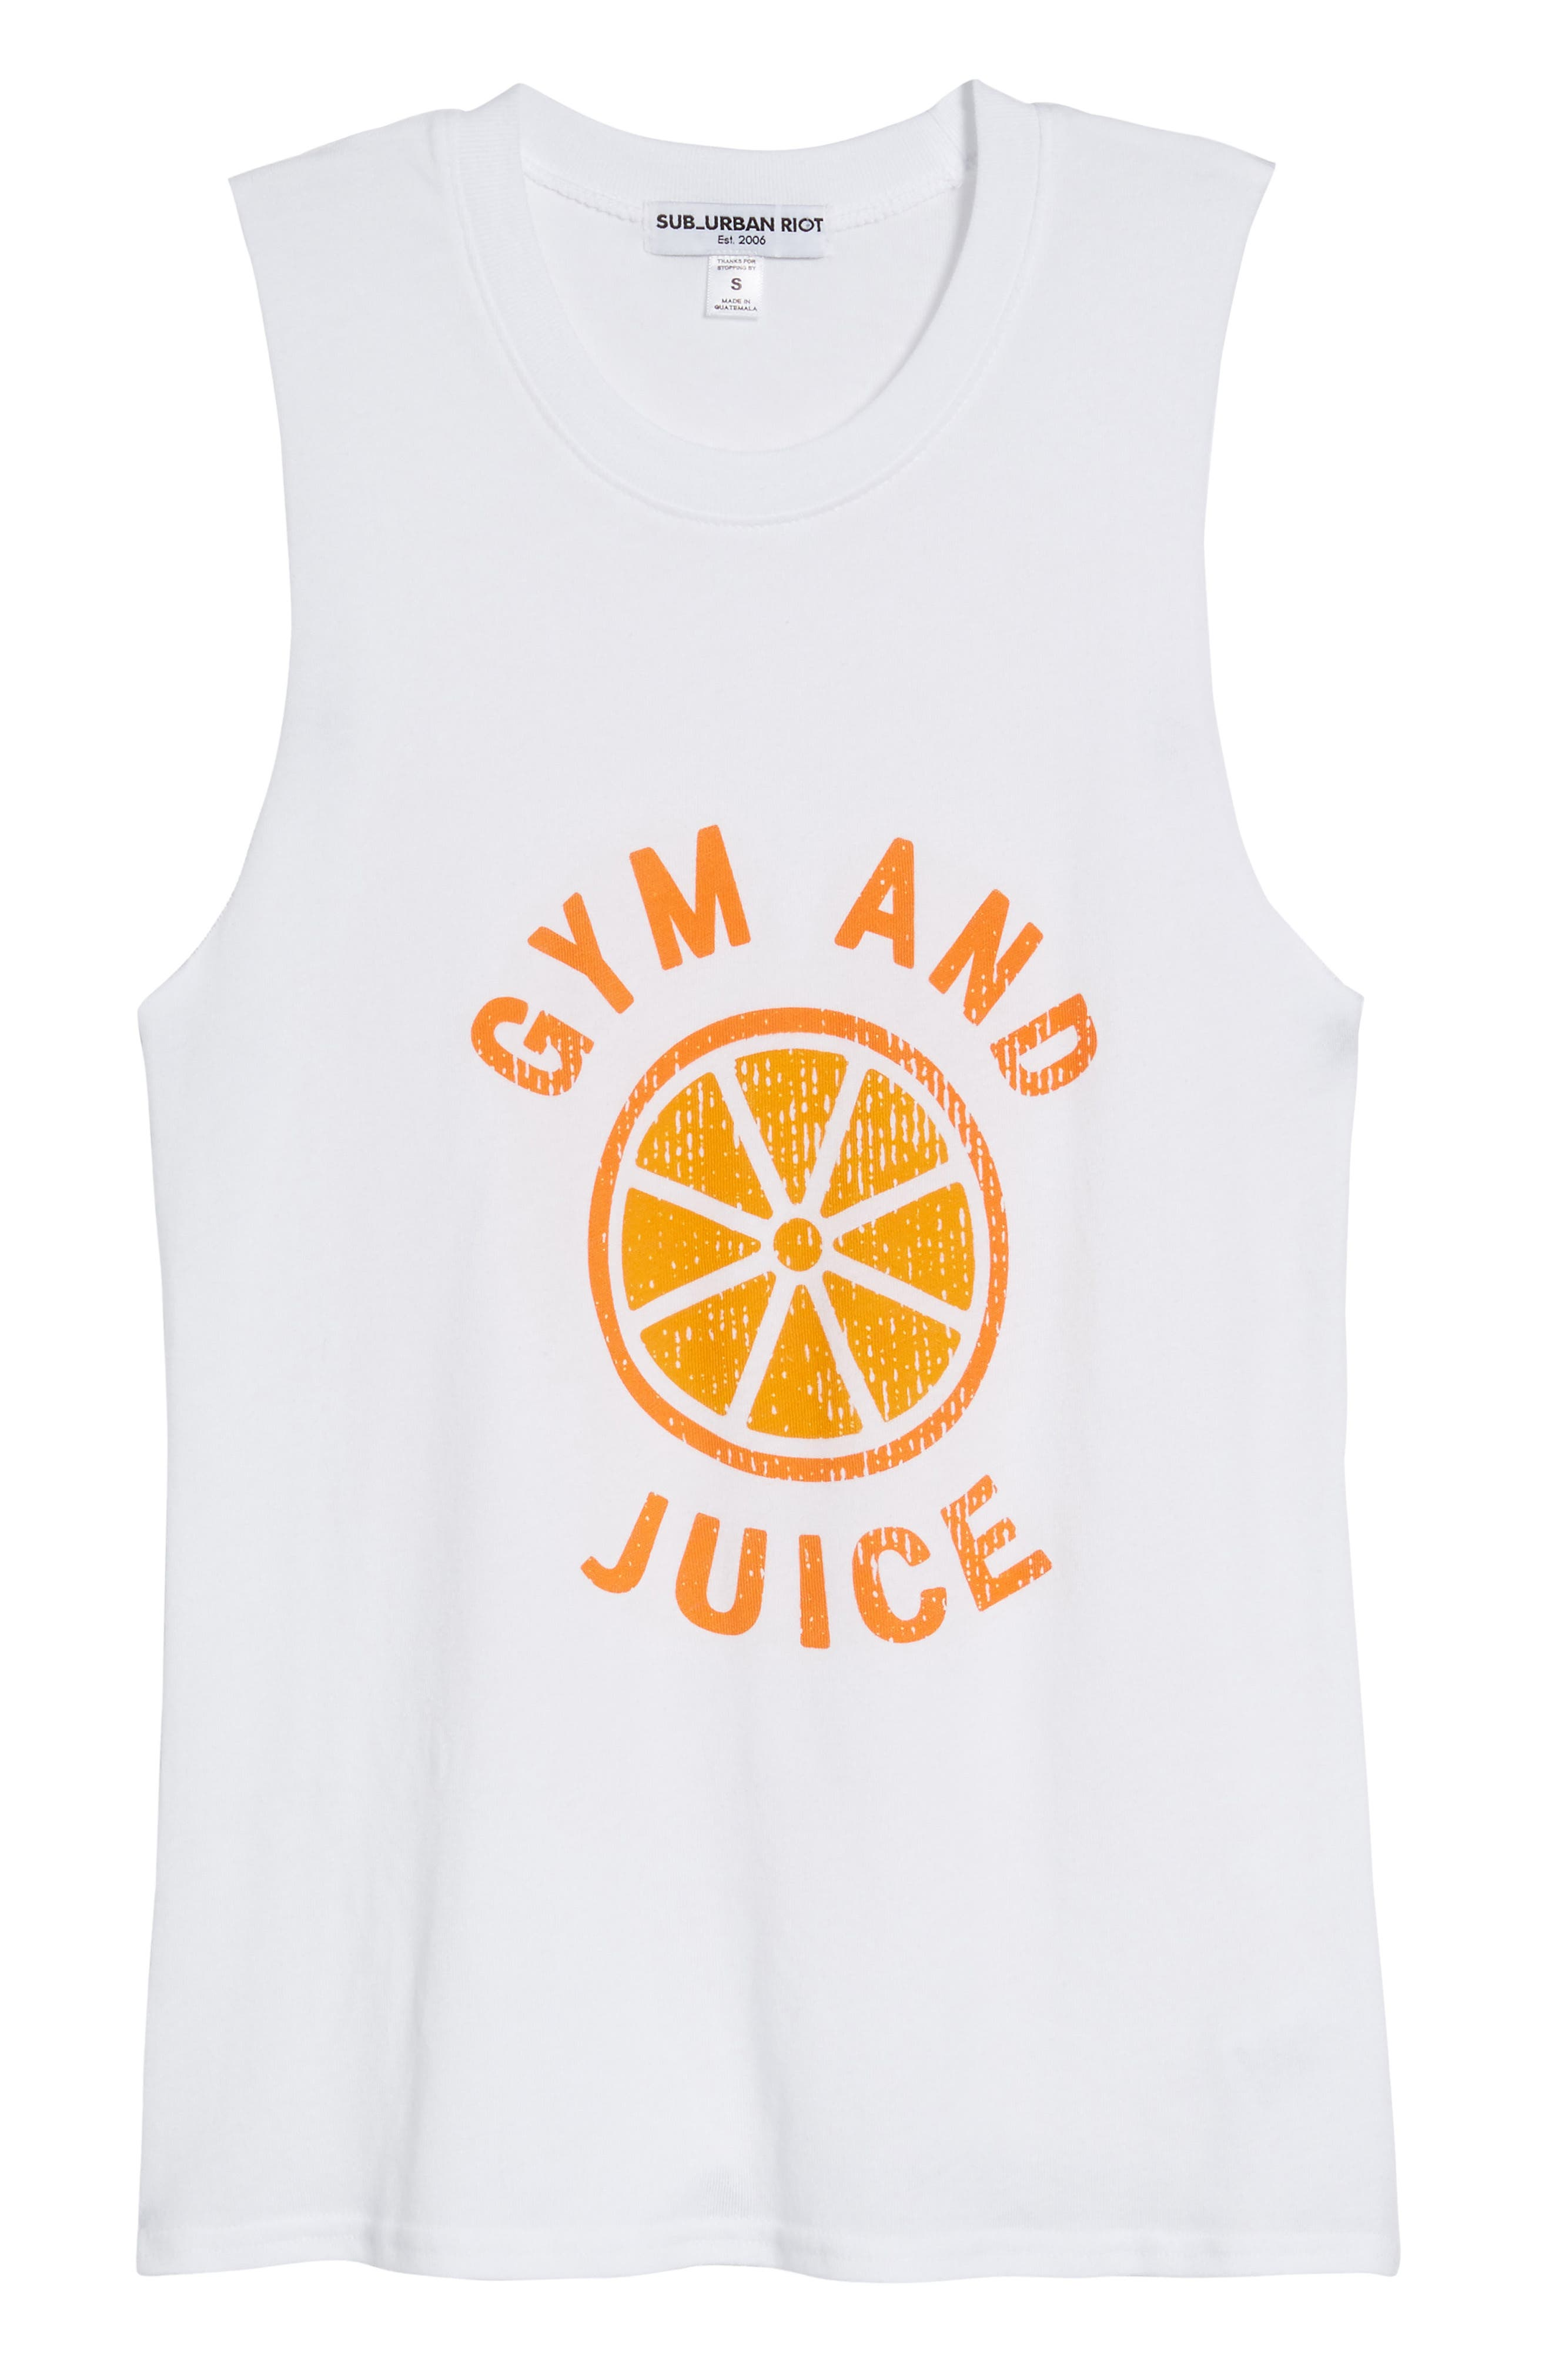 Gym and Juice Muscle Tank Top,                             Alternate thumbnail 7, color,                             100